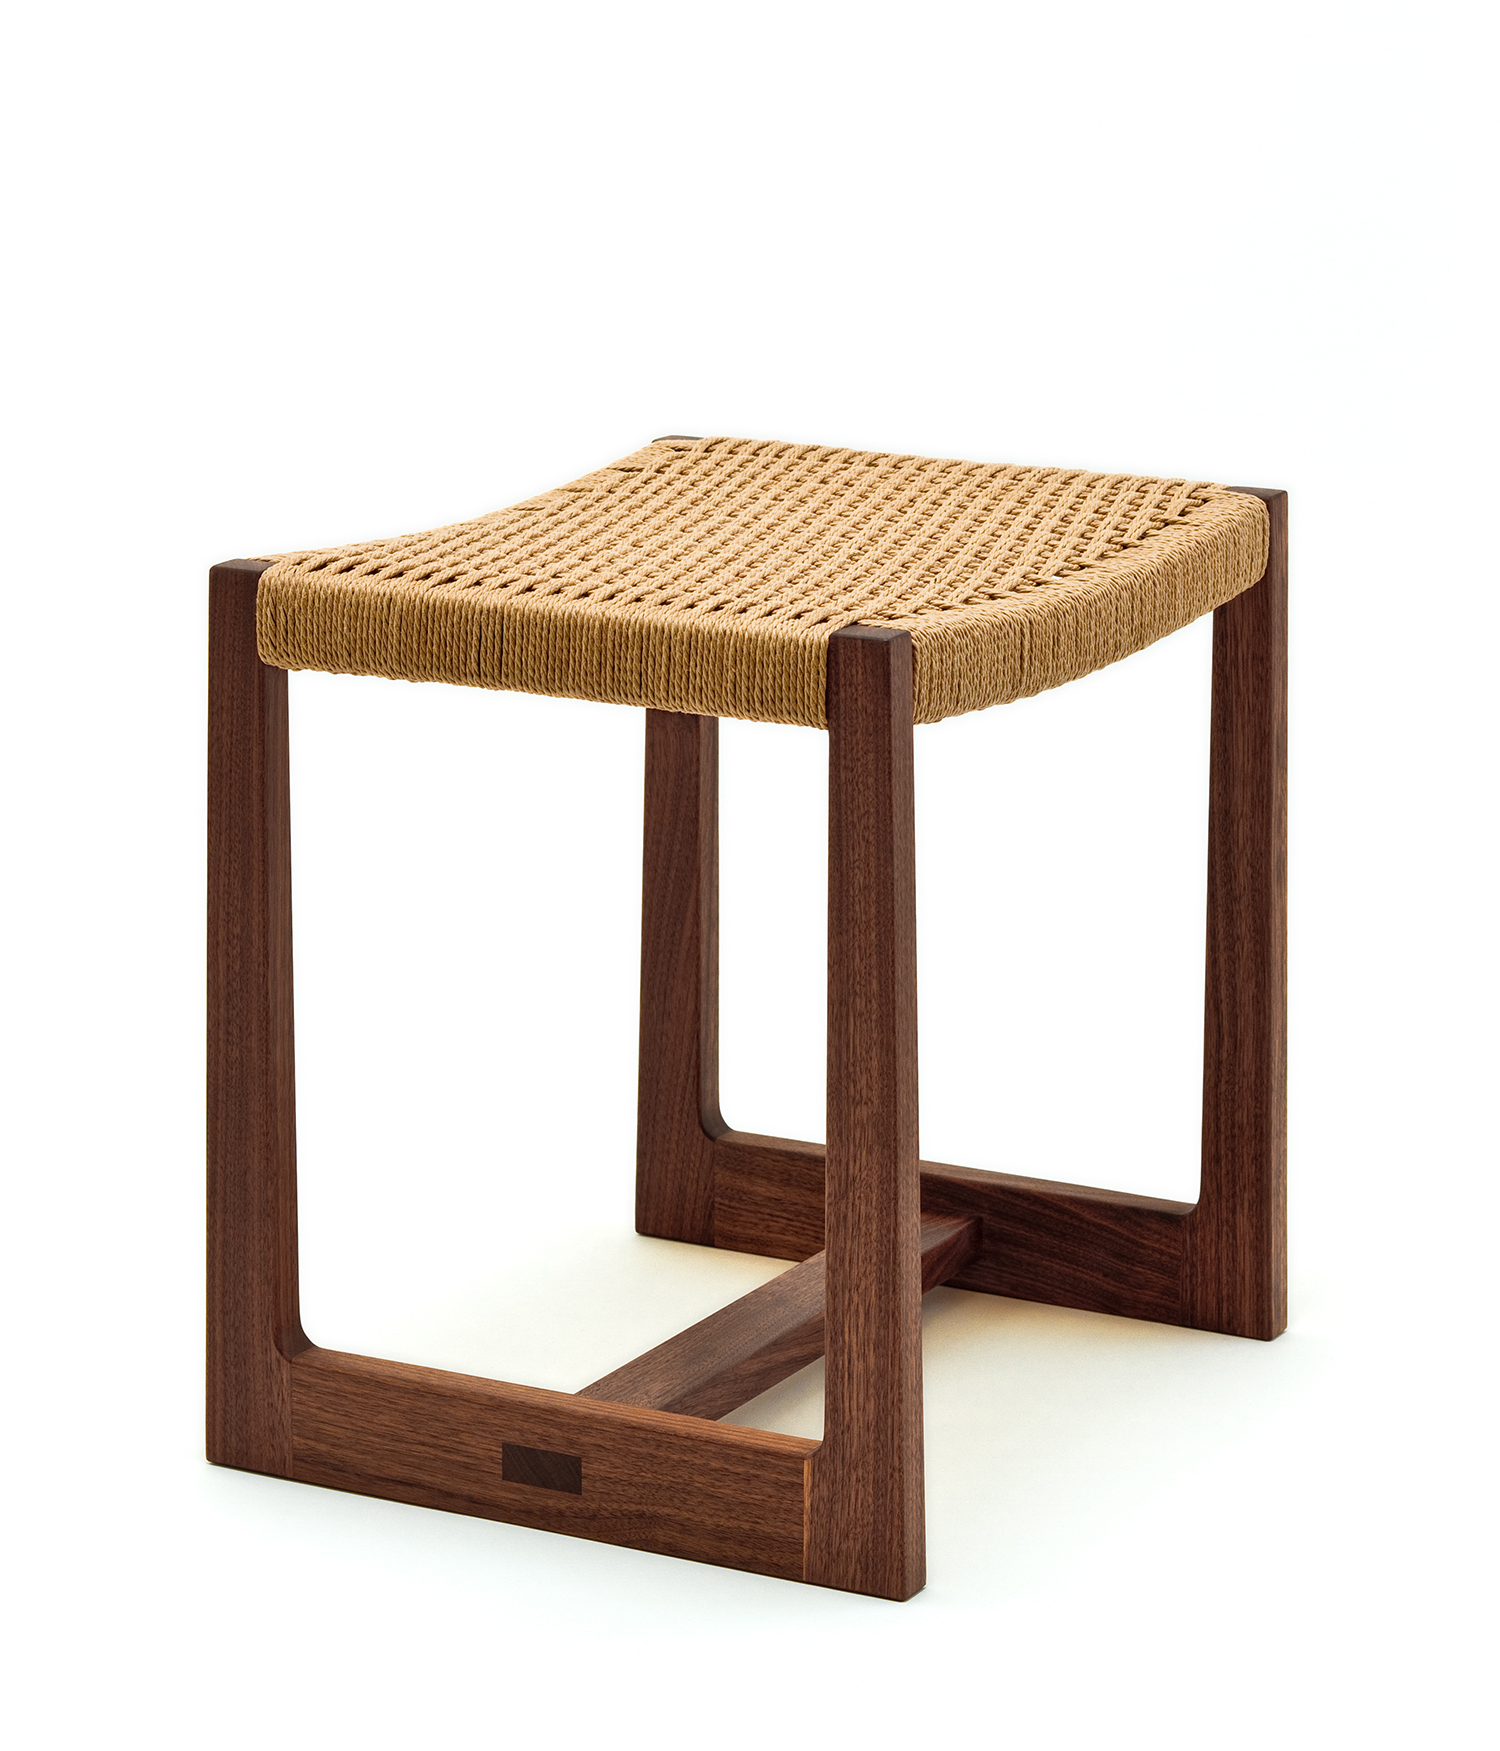 Low Matteawan stool in walnut and natural Danish cord